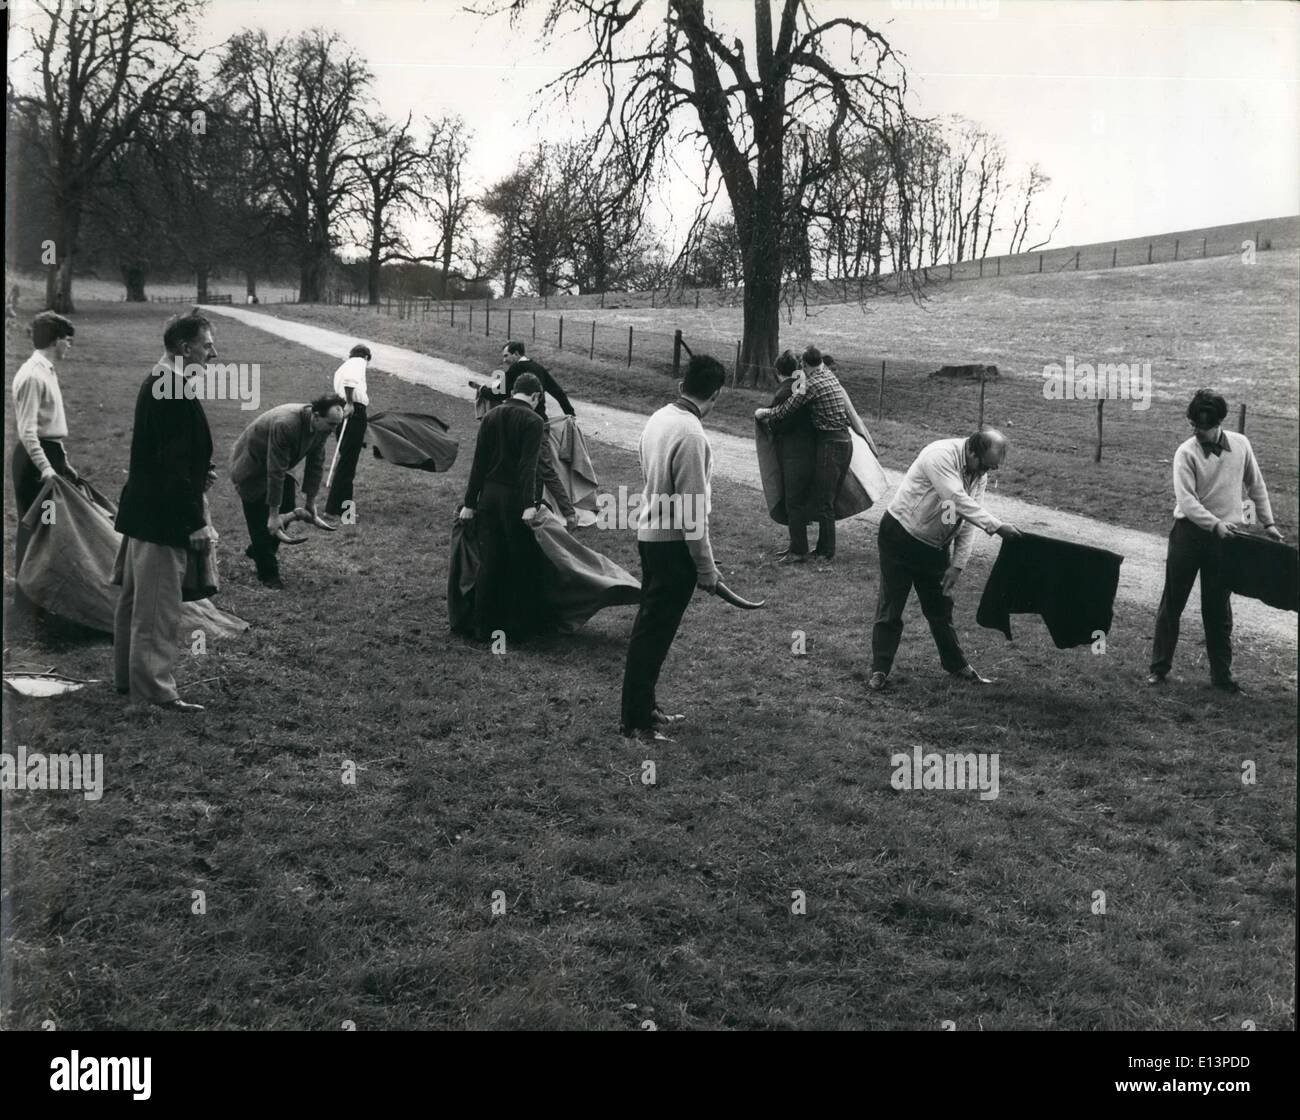 Mar. 22, 2012 - Bullfighters all-members practice various manoupres. - Stock Image